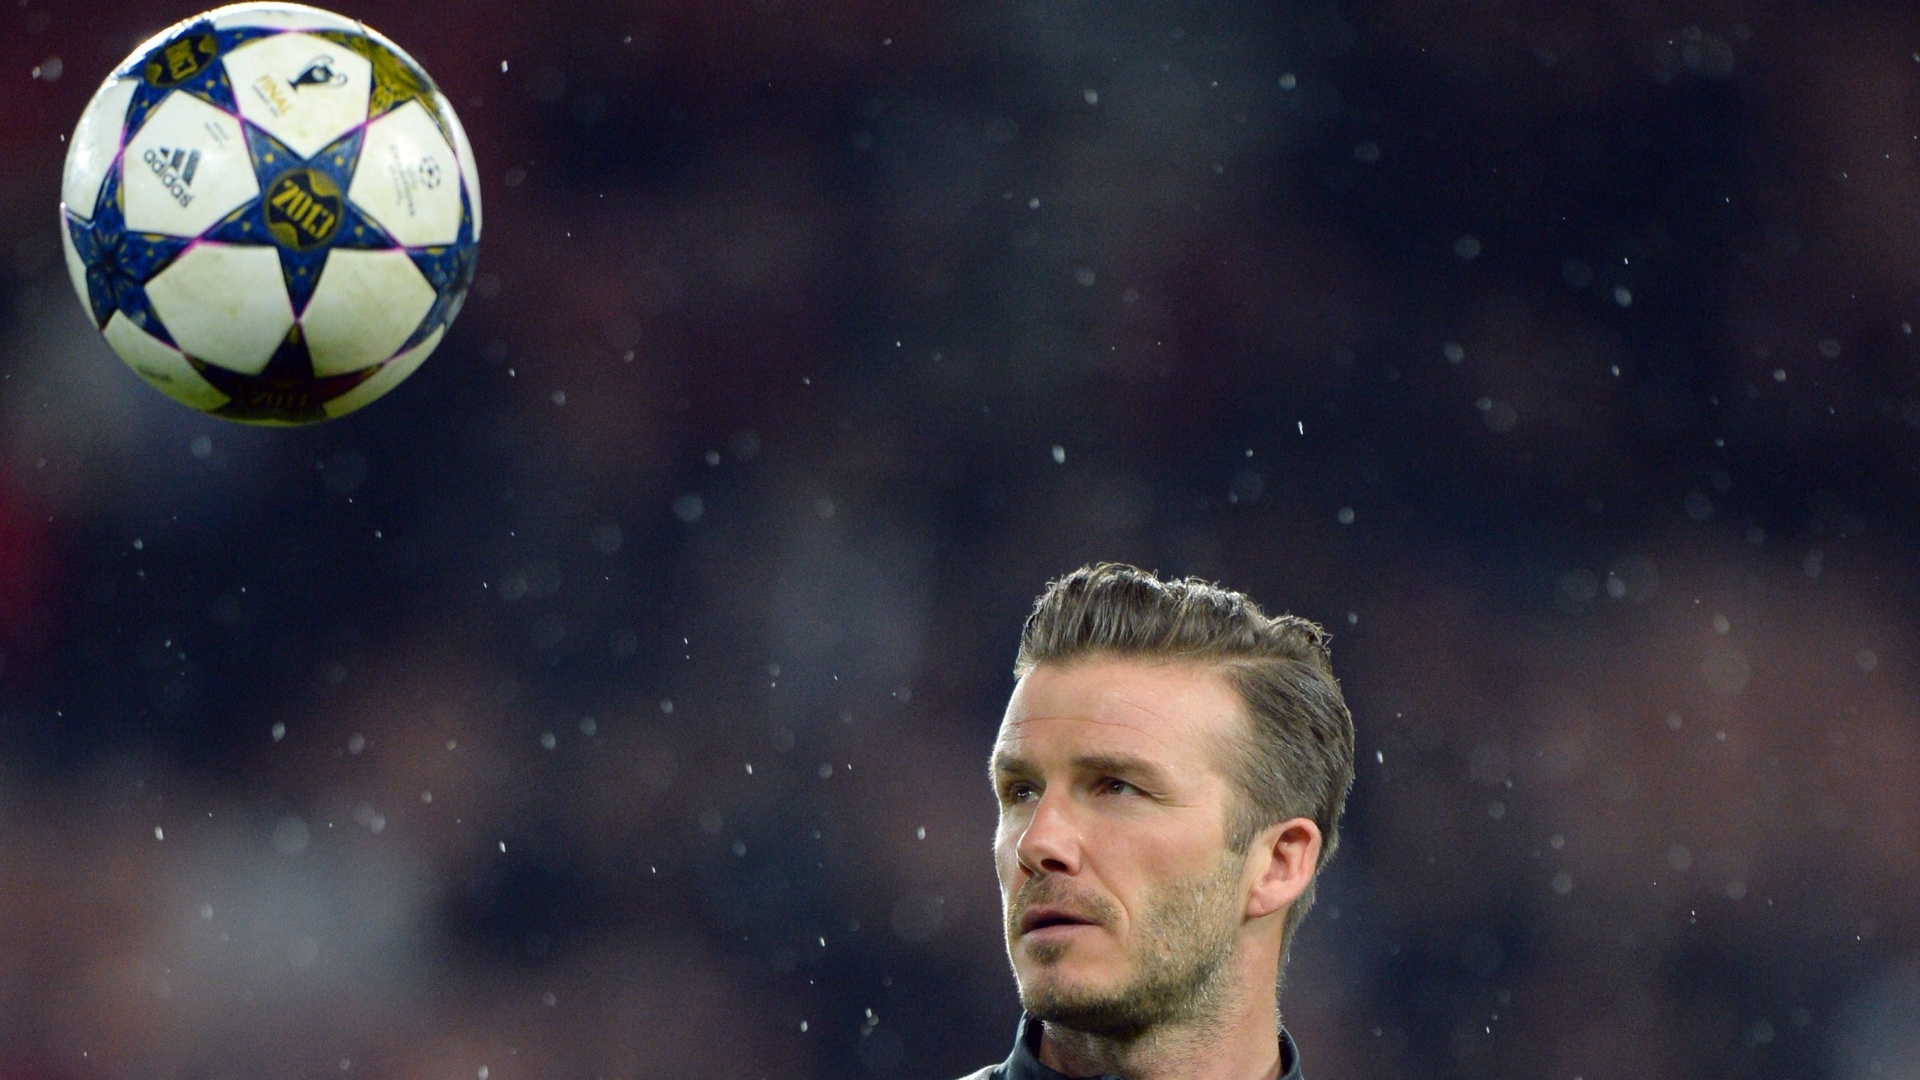 06.mar.2013 - David Beckham, do Paris Saint-Germain, aquece antes da partida contra o Valencia, pela Liga dos Campeões